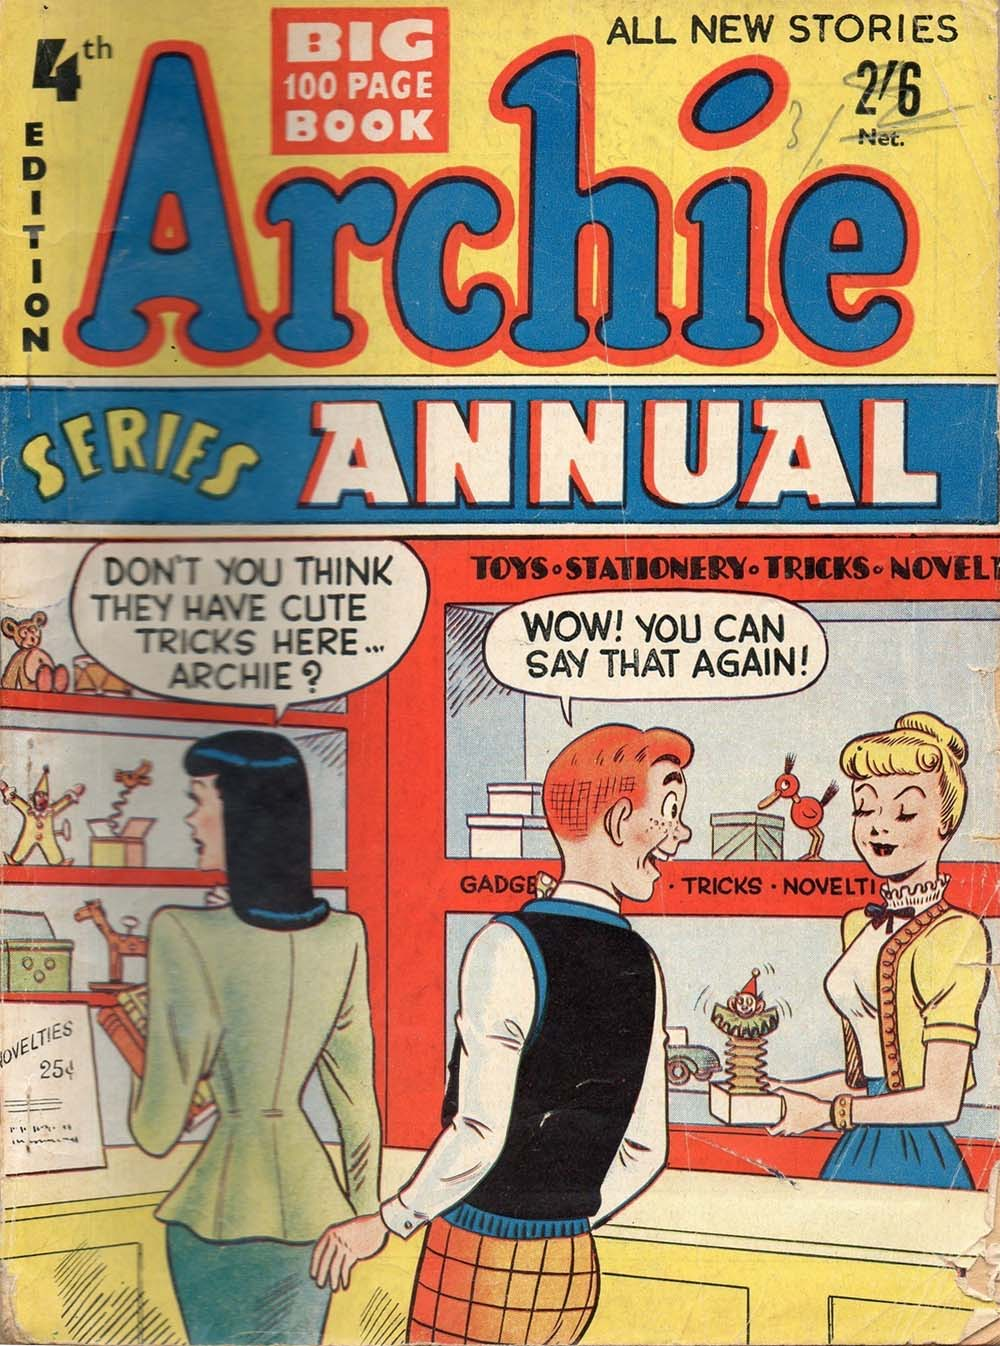 Archie Series Annual